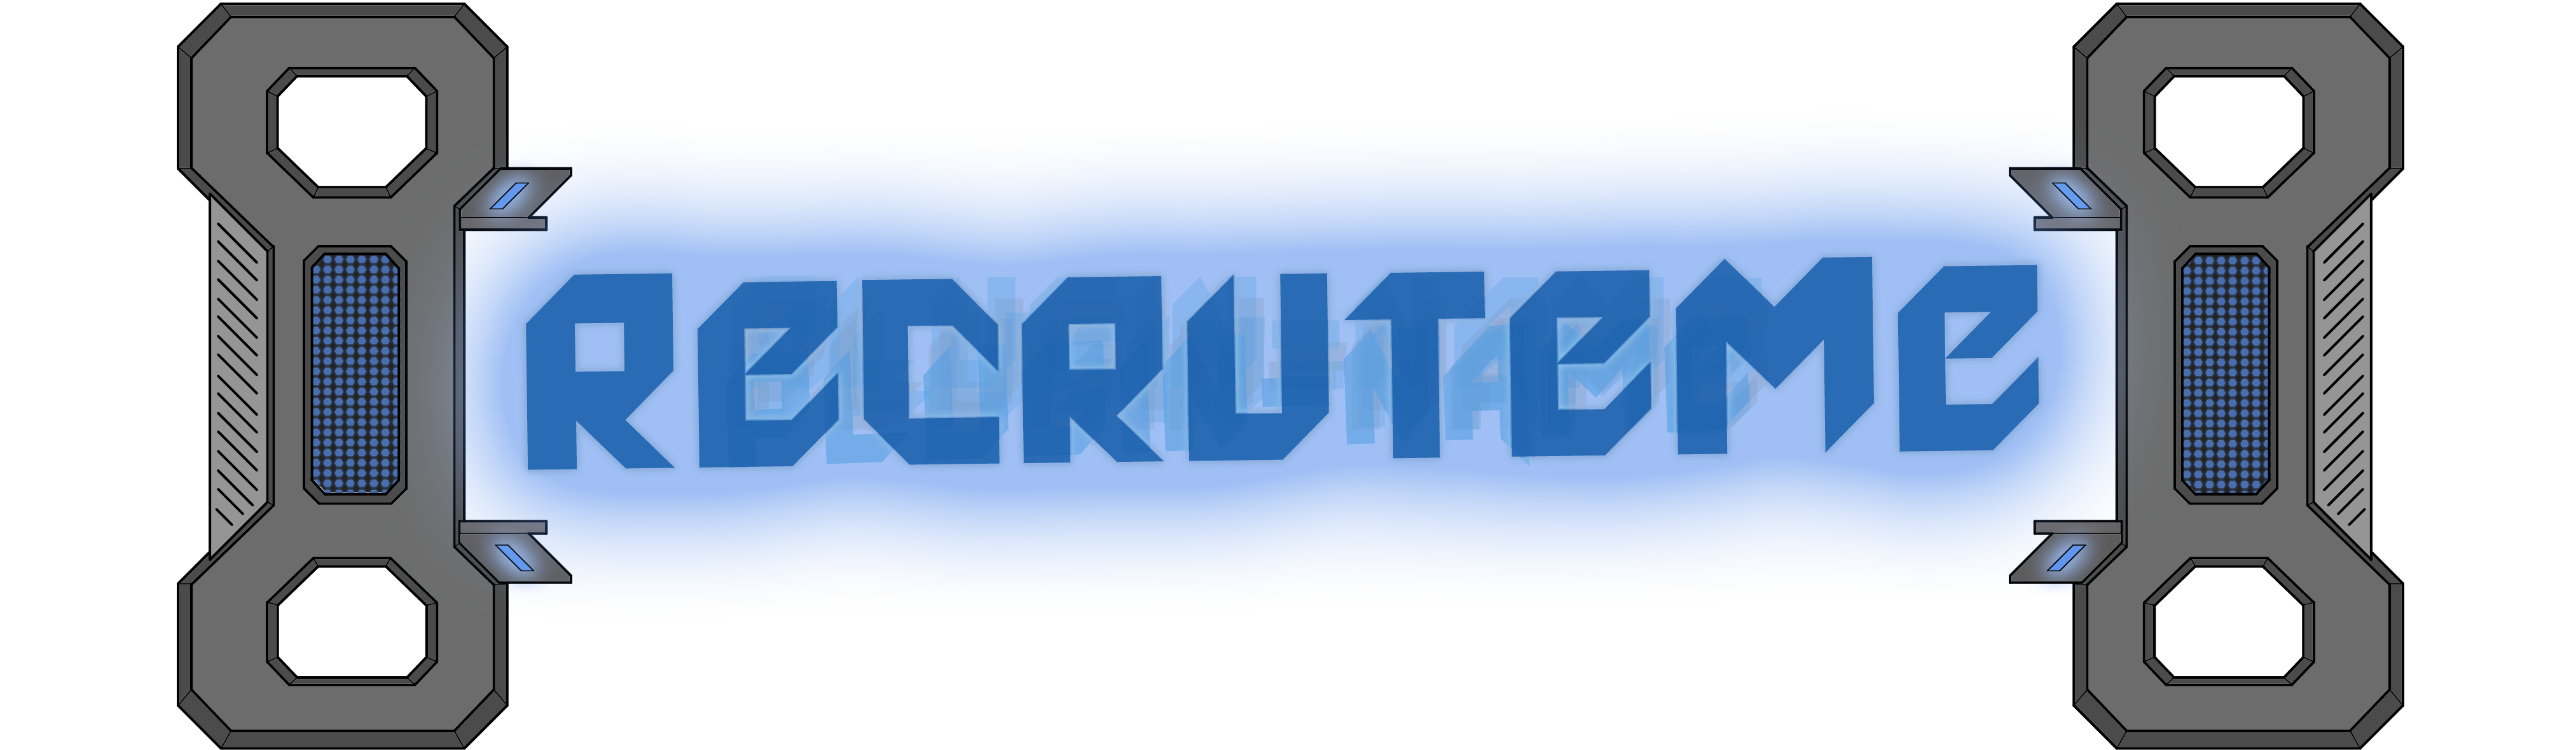 RecruitMe - Bukkit Plugins - Minecraft - CurseForge